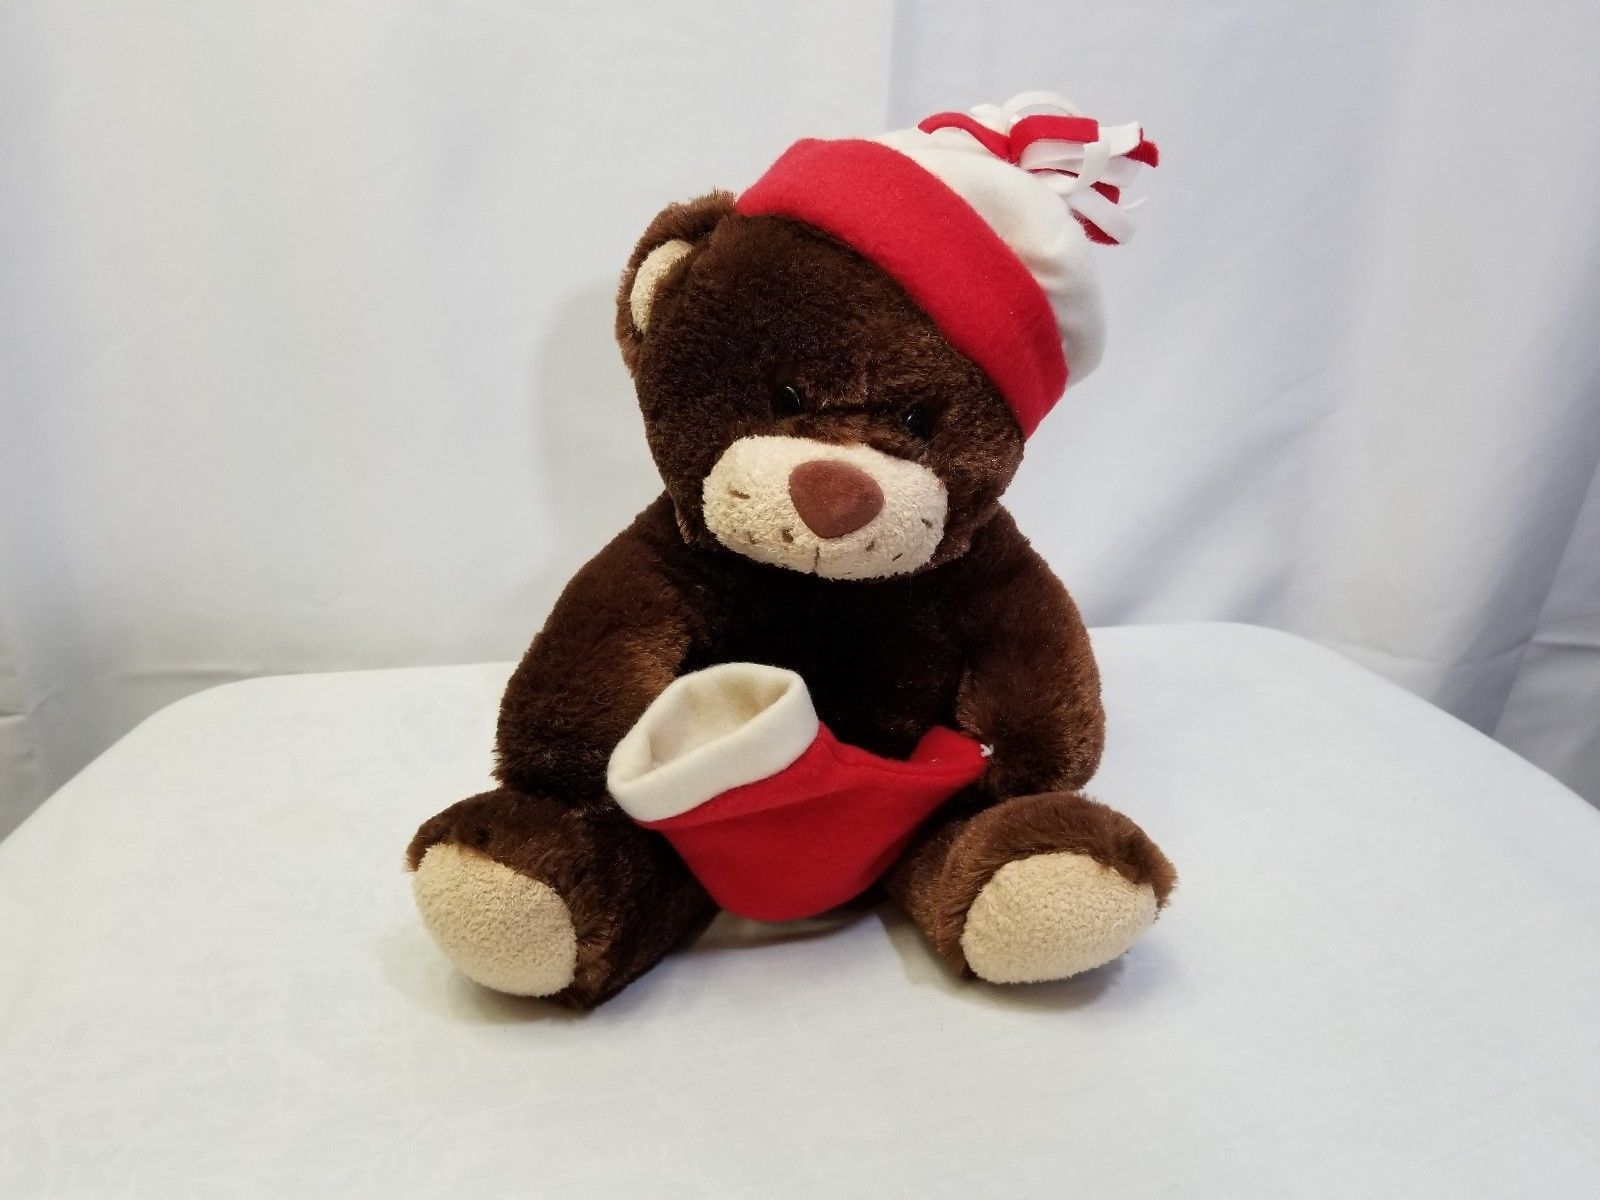 917e62b6ee7ef S l1600. S l1600. Dan Dee Collectors Choice Christmas Bear Plush Red Hat  and Stocking Brown Teddy